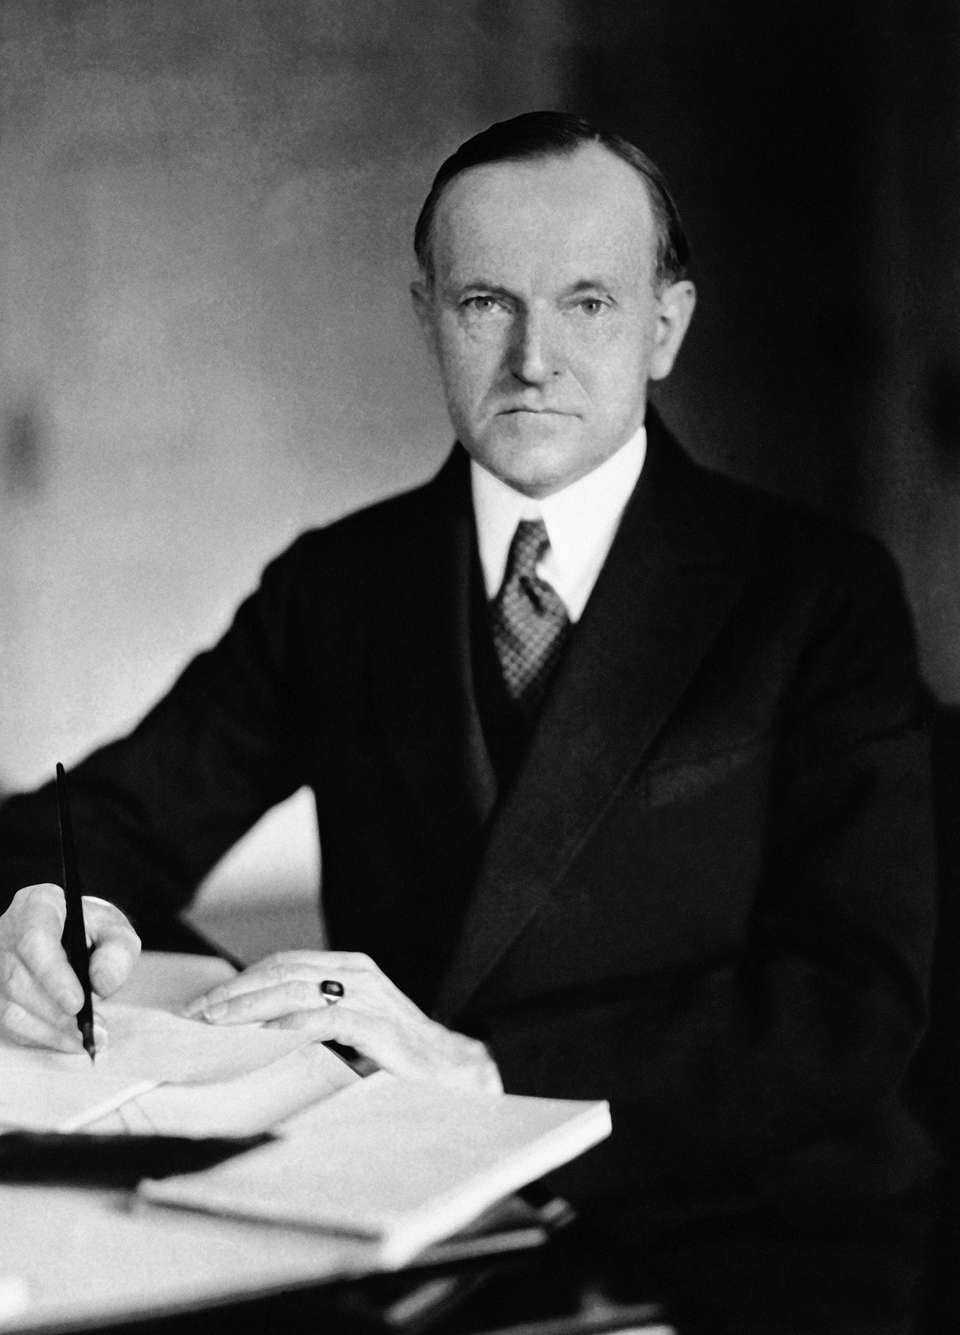 Calvin Coolidge was vice president under President Warren